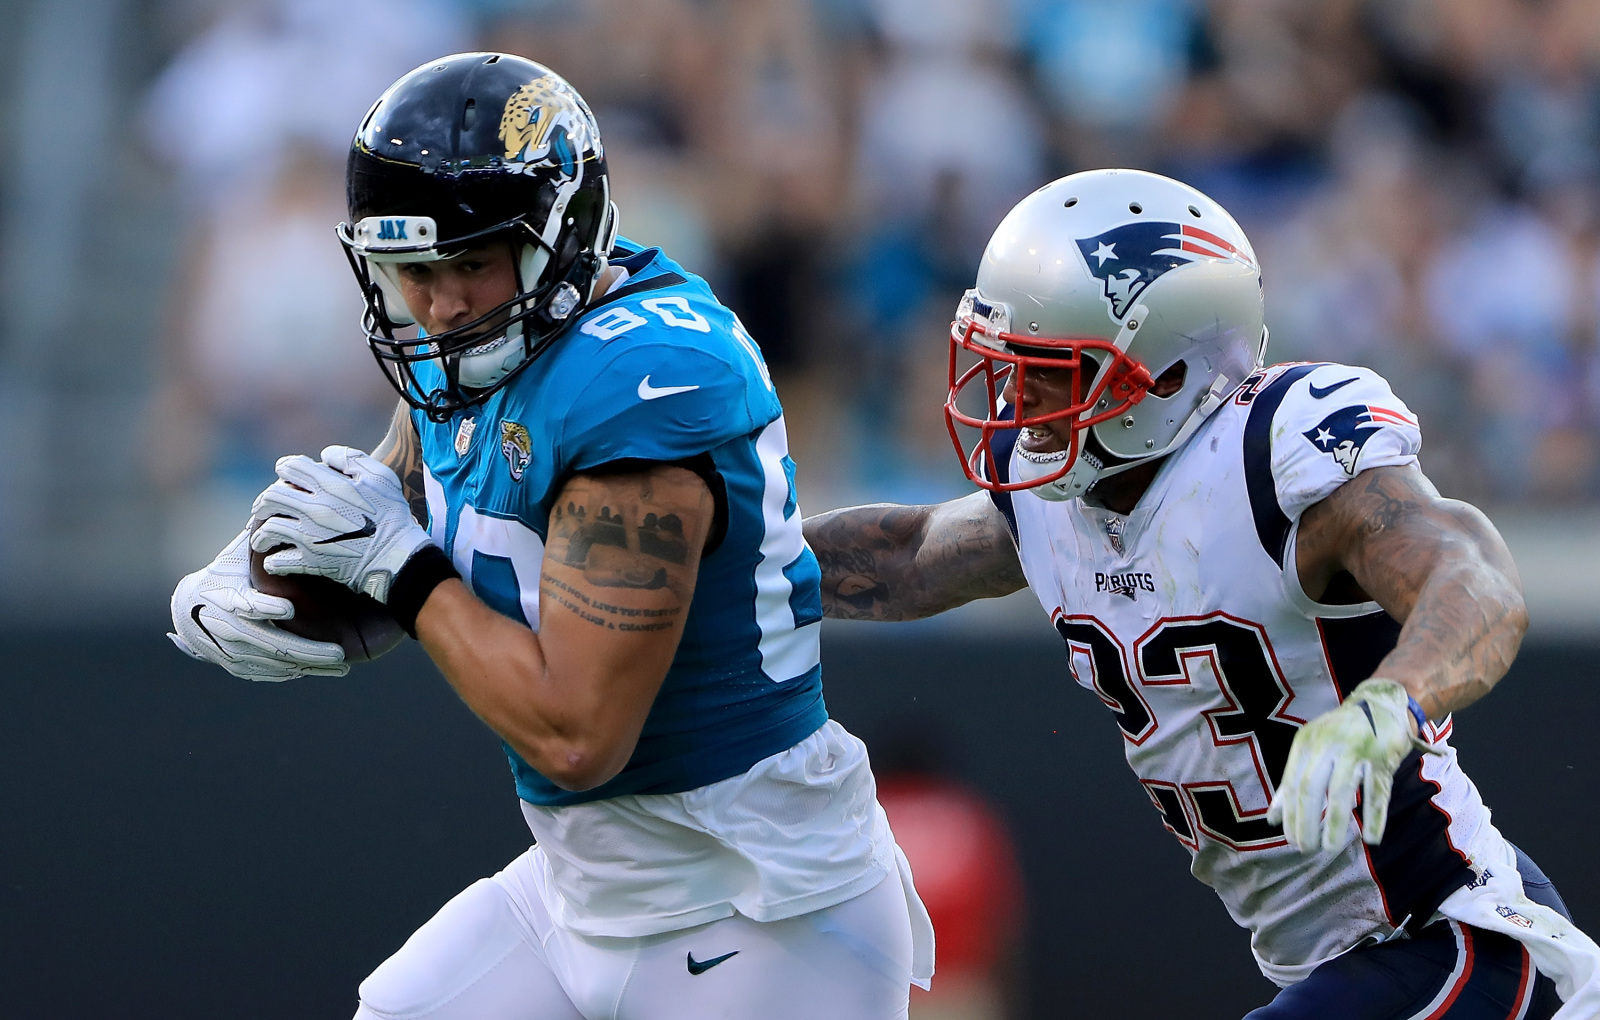 Jacksonville Jaguars: Finding a solution to the tight end position